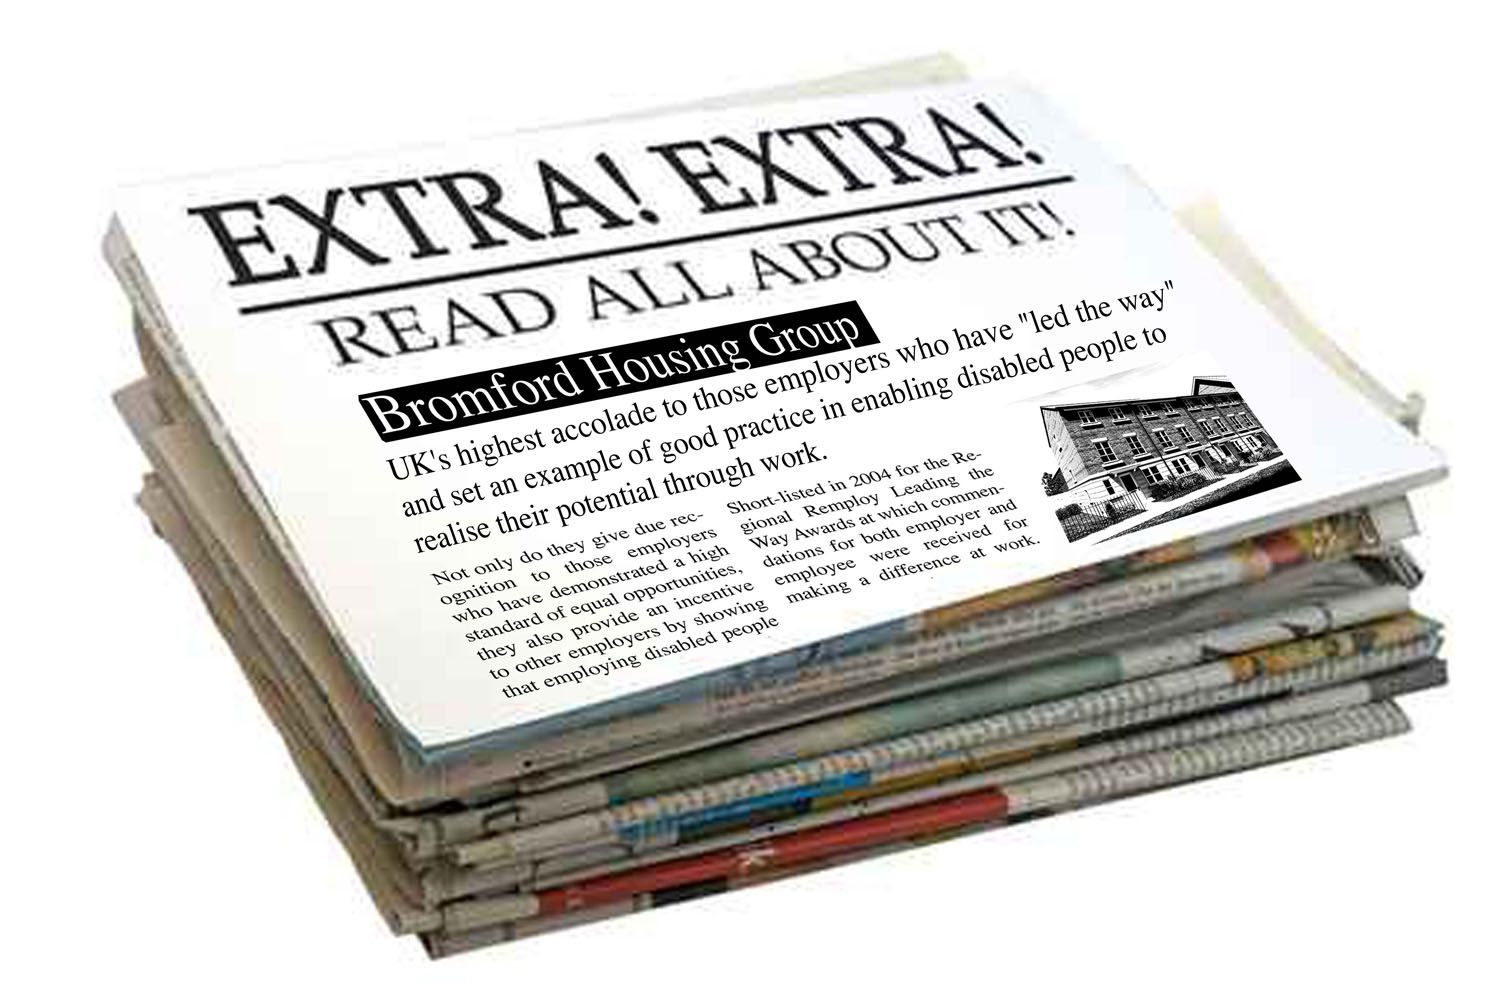 Props A Newspaper Has Anybody Ever Picked Up One Of These ItS A